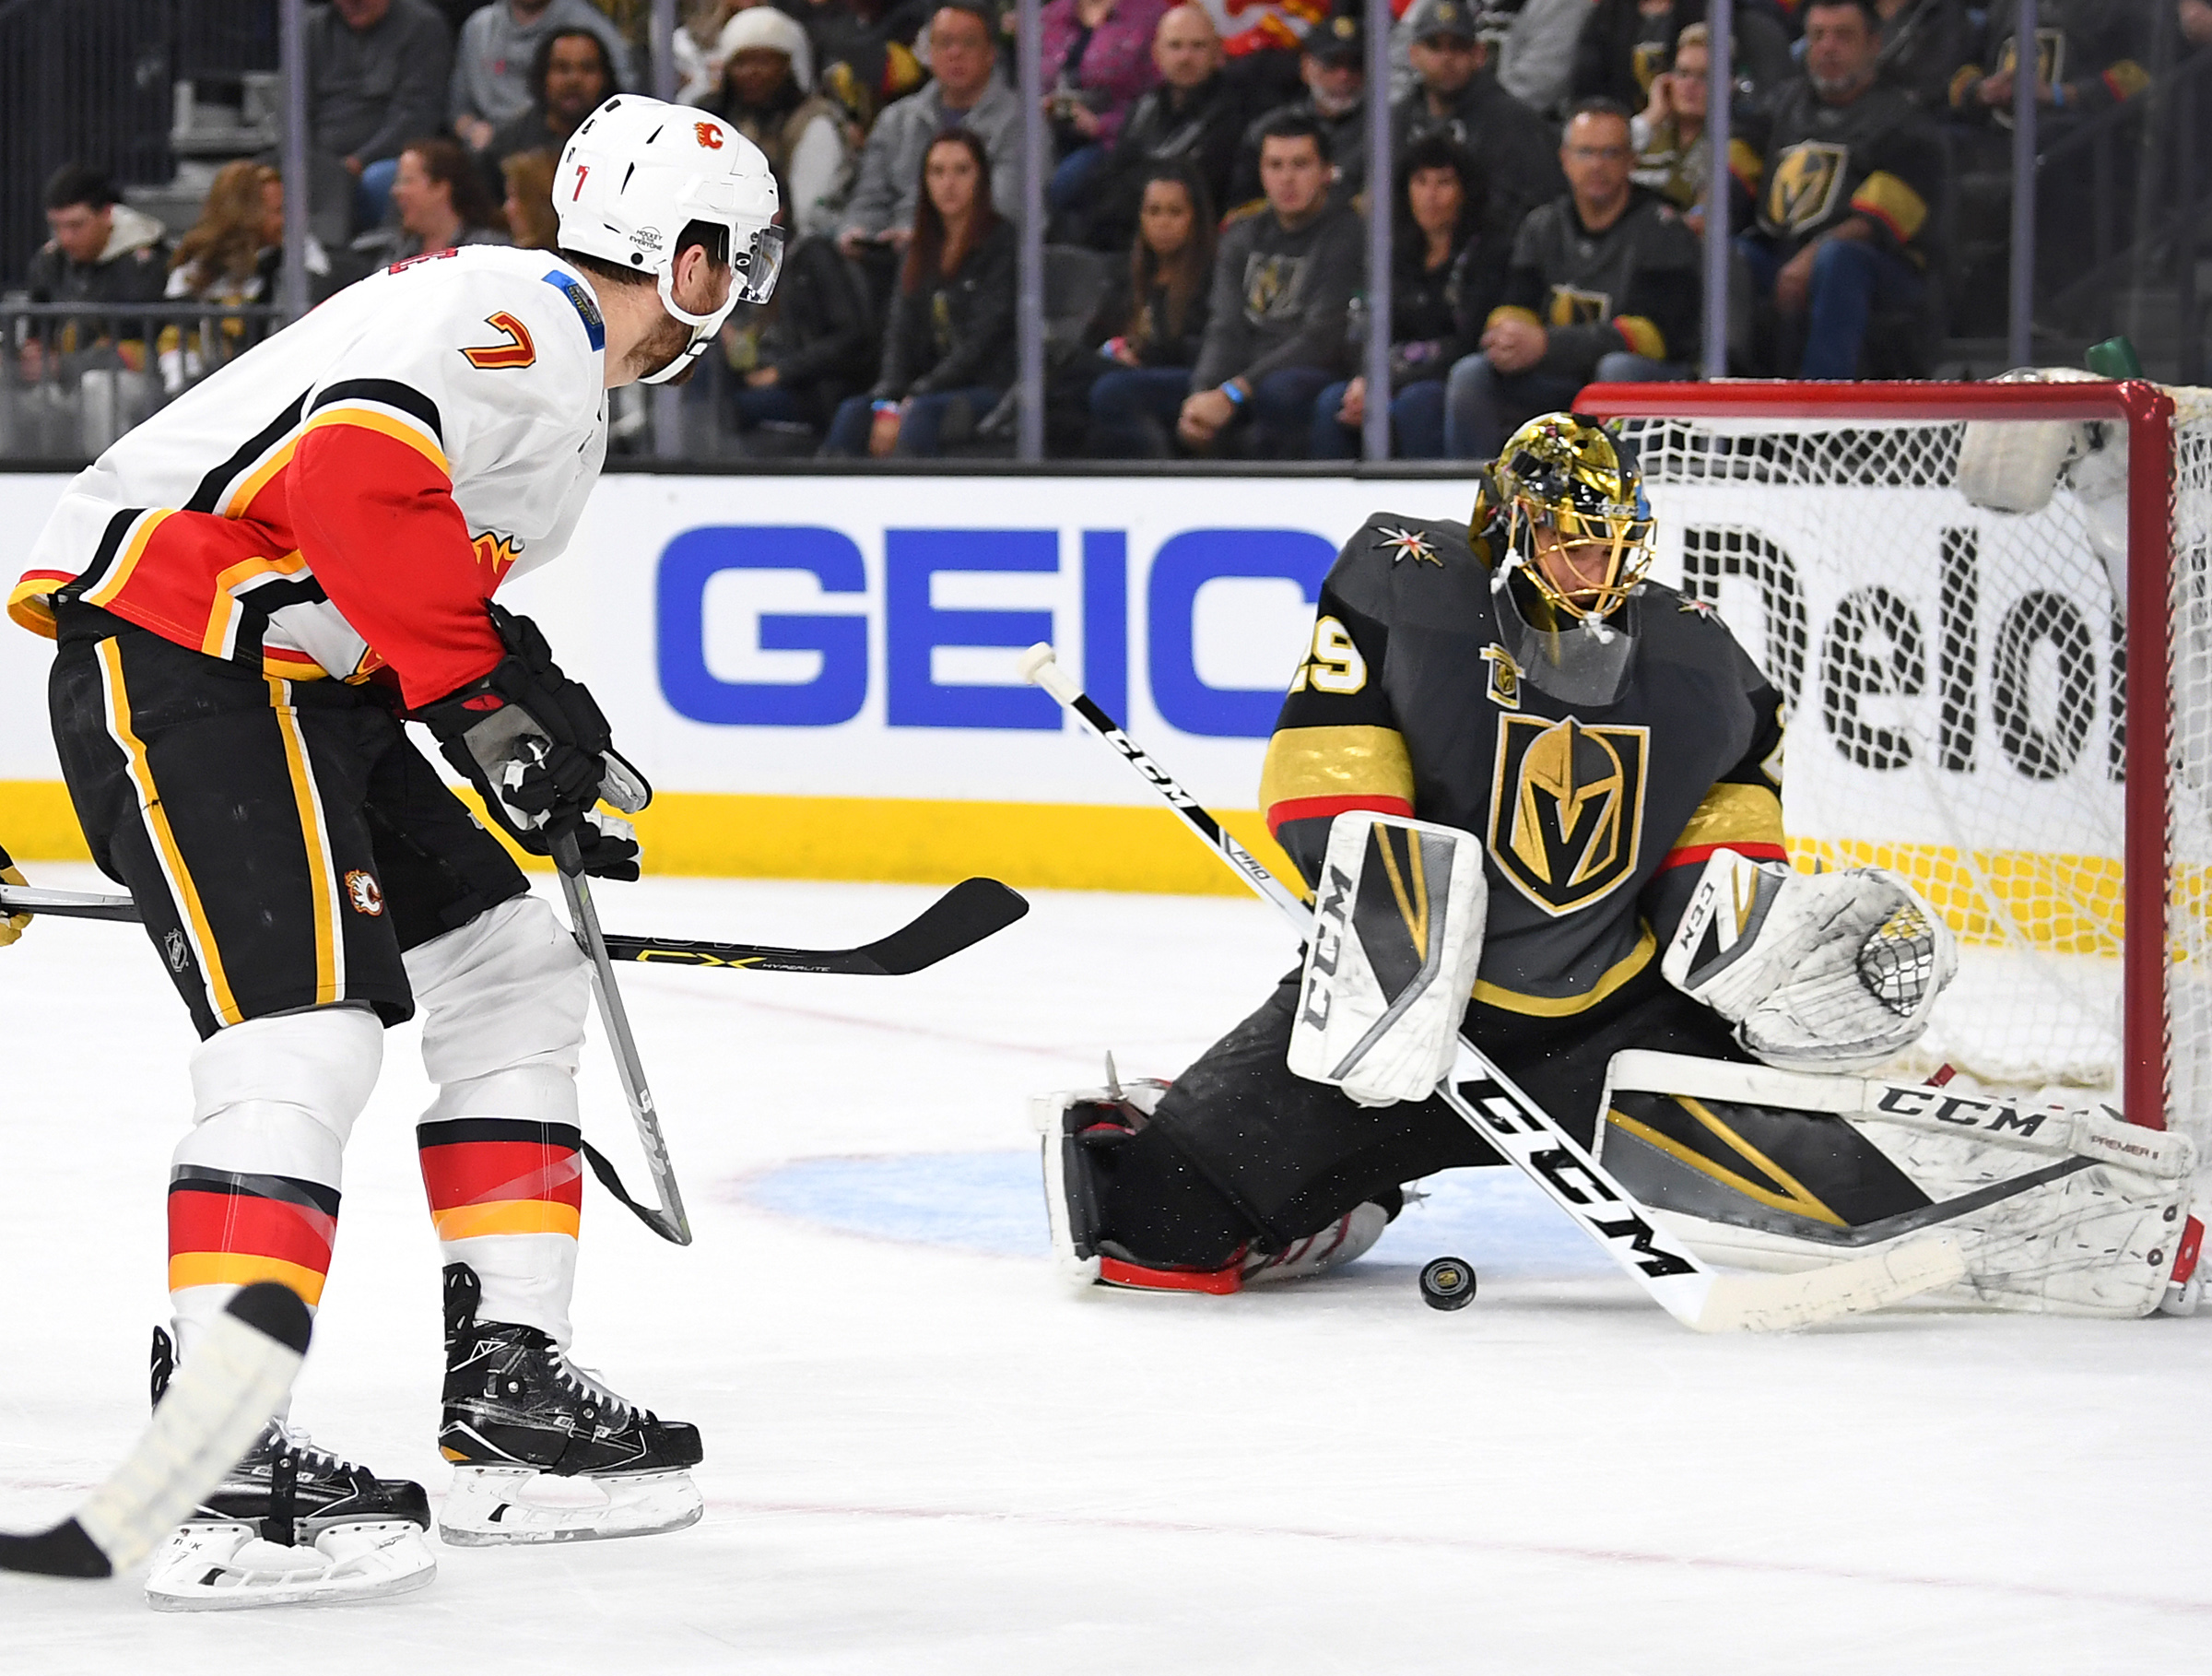 bcc049acd Flames at Golden Knights 03 06 19 – Odds and NHL Betting Trends